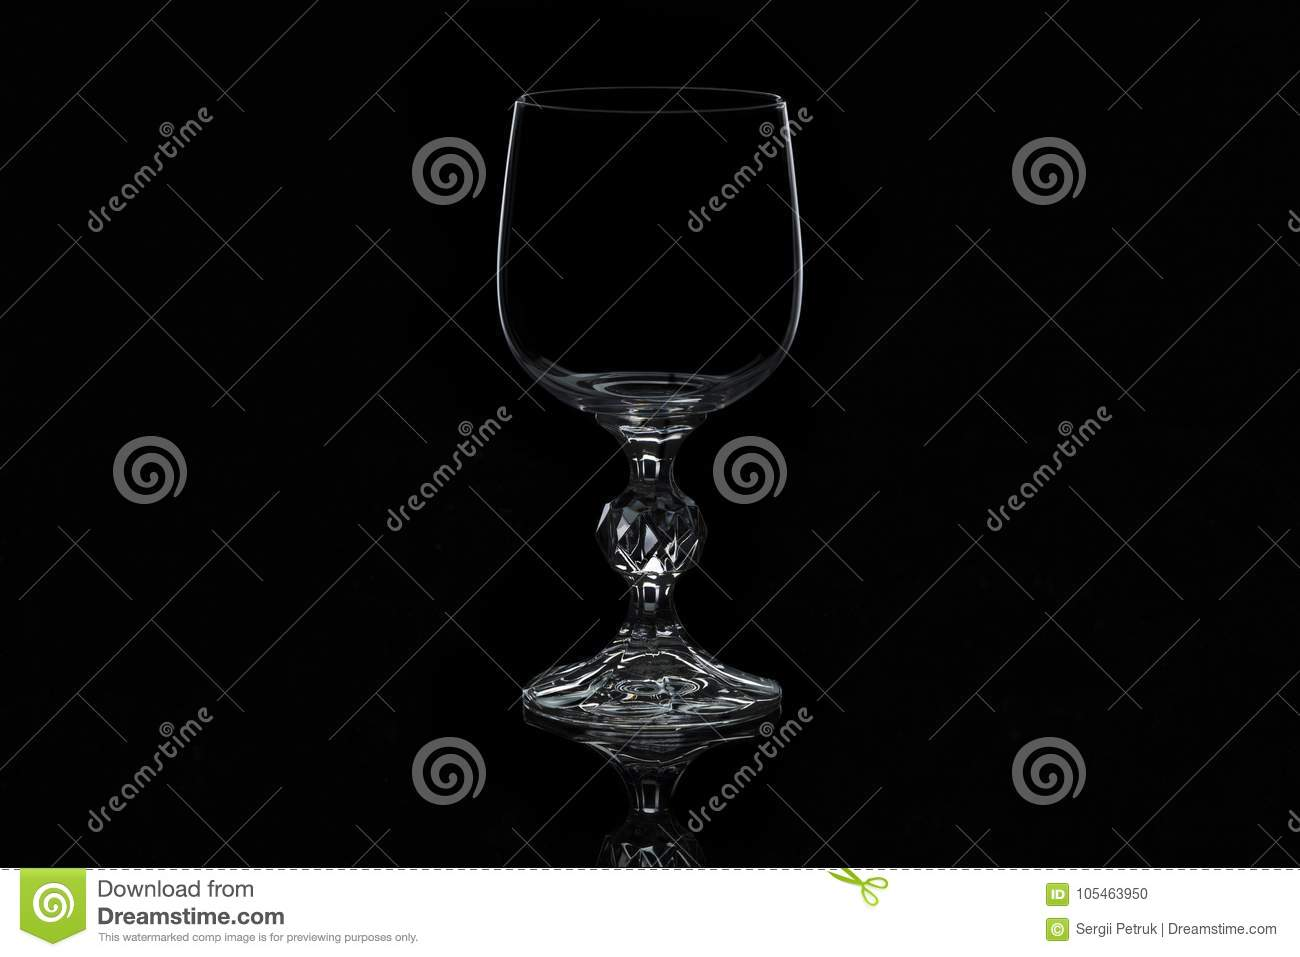 Glass wine glass isolated on a black background